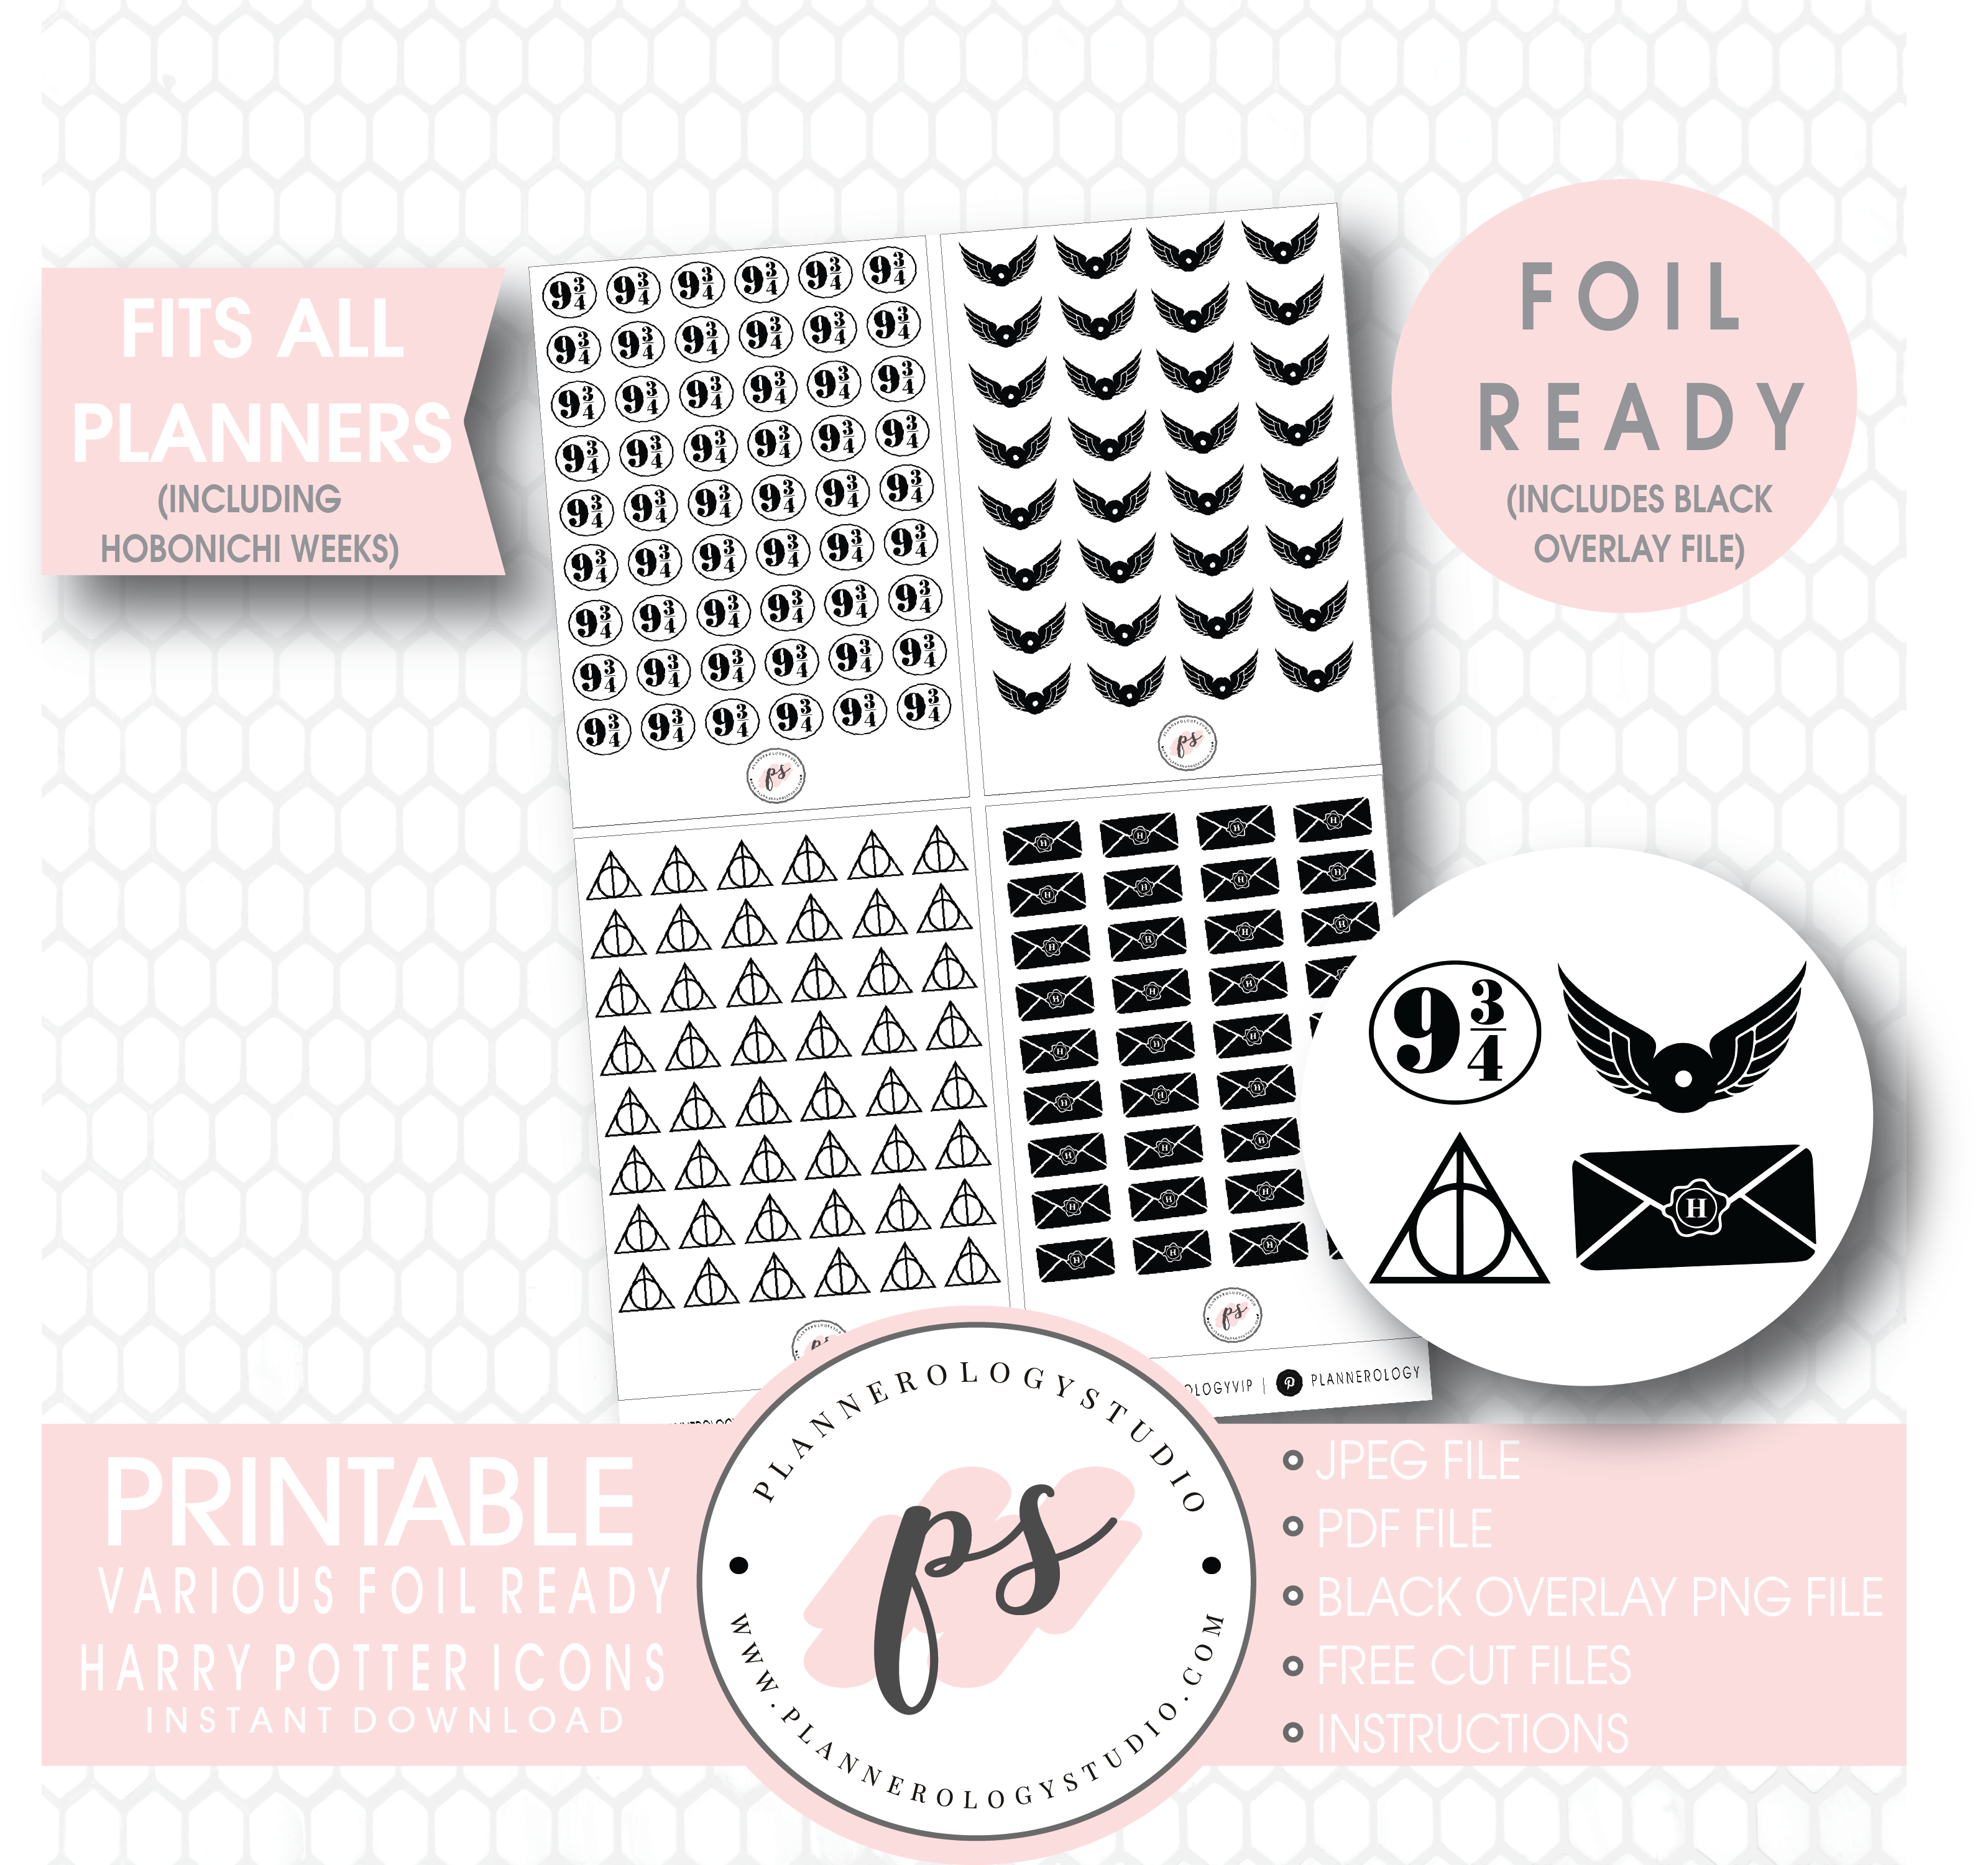 image about Harry Potter Printable named Different Harry Potter Influenced Icon Electronic Printable Hobonichi Months Planner Stickers (Foil Prepared)